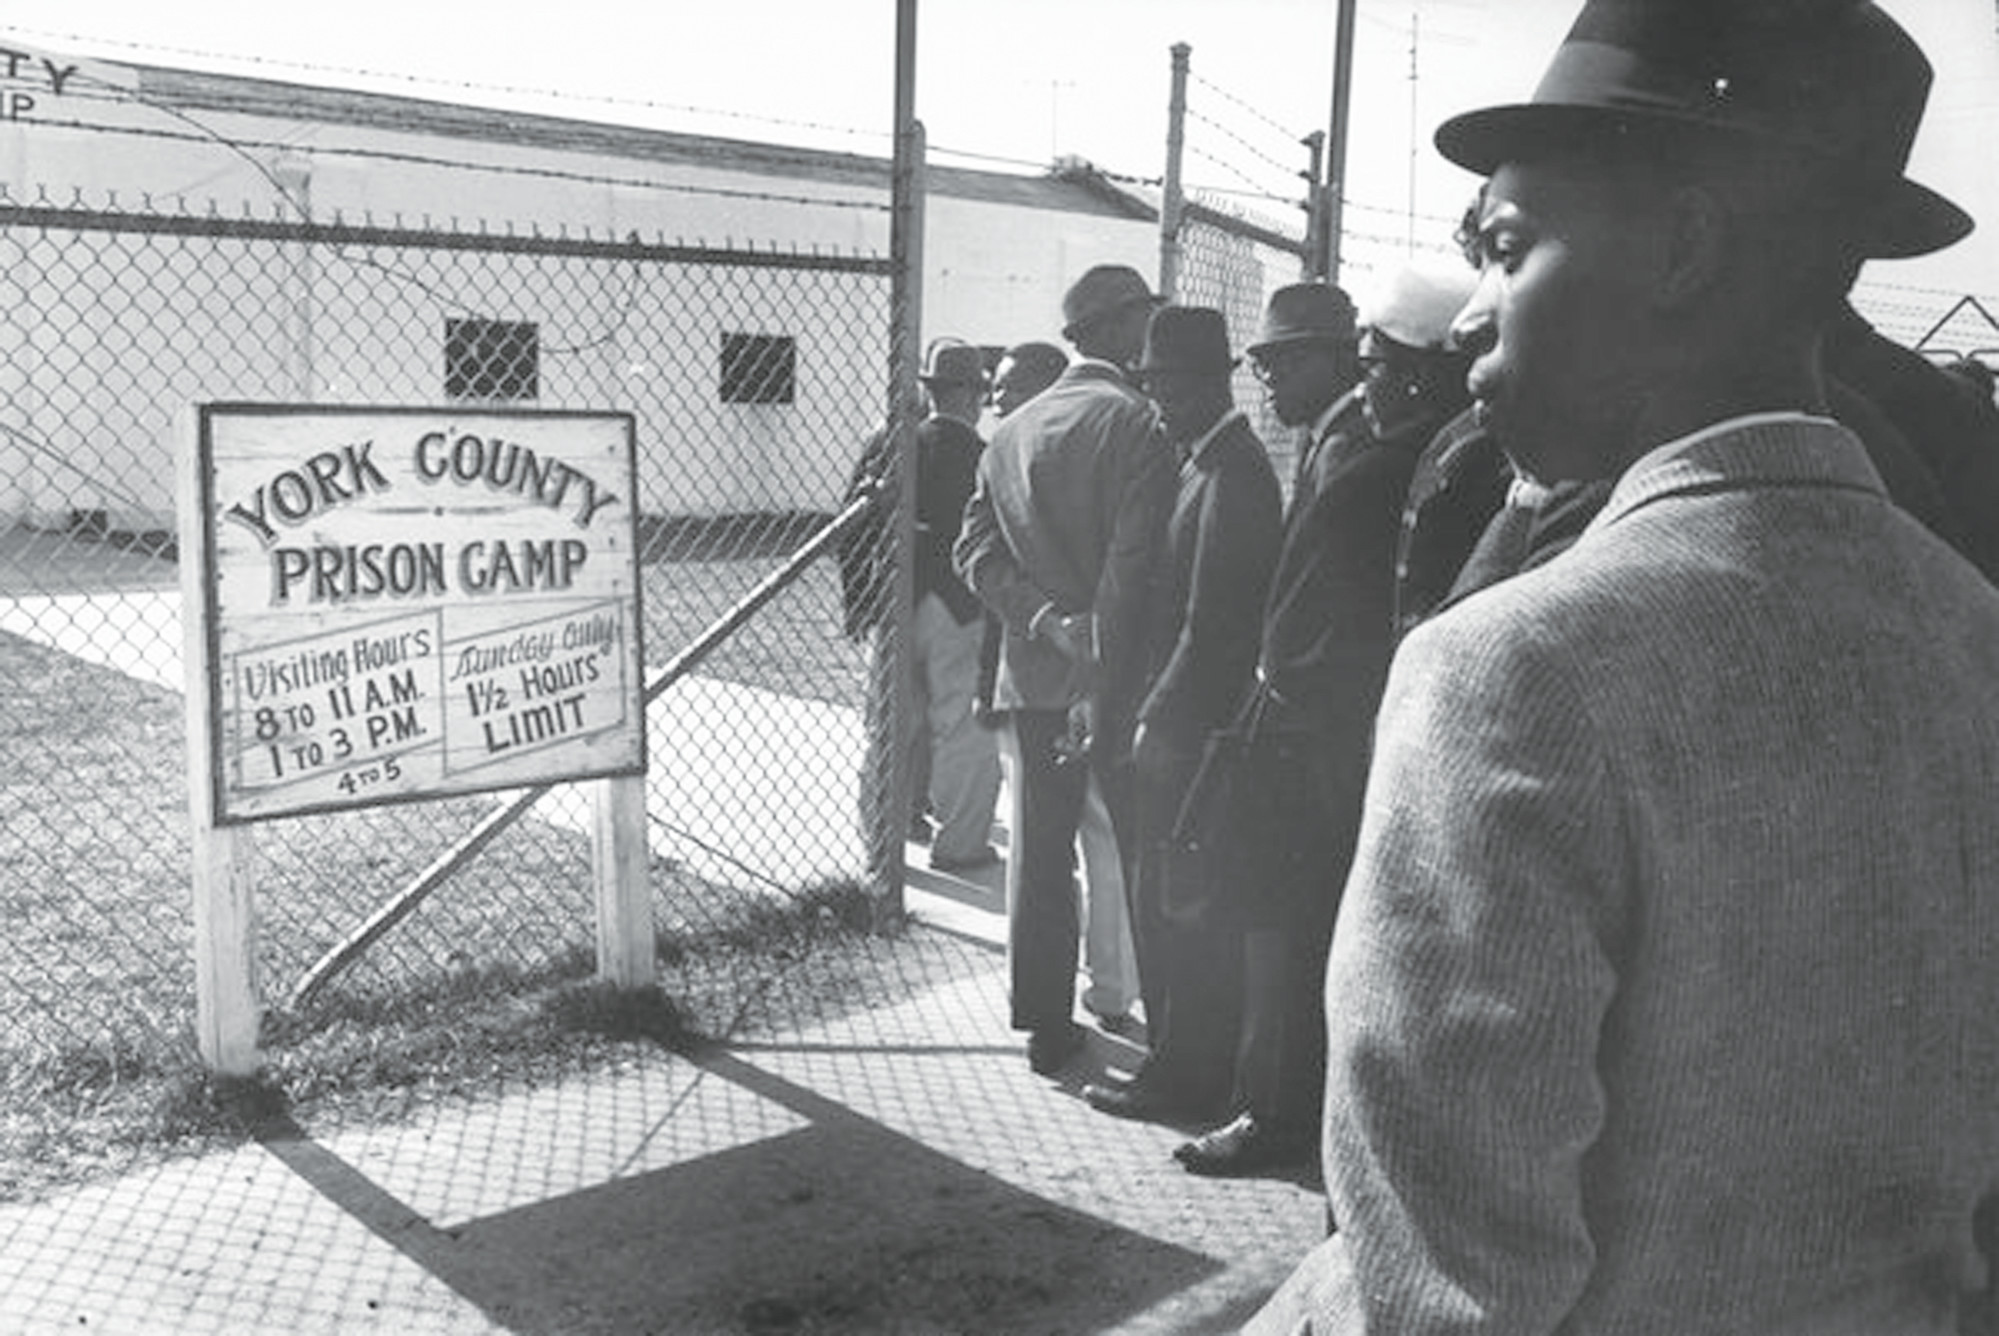 PHOTOS PROVIDED BY WWW.ZINNEDPROJECT.COM Supporters of the Friendship Nine visit the York County Prison Farm in 1961.